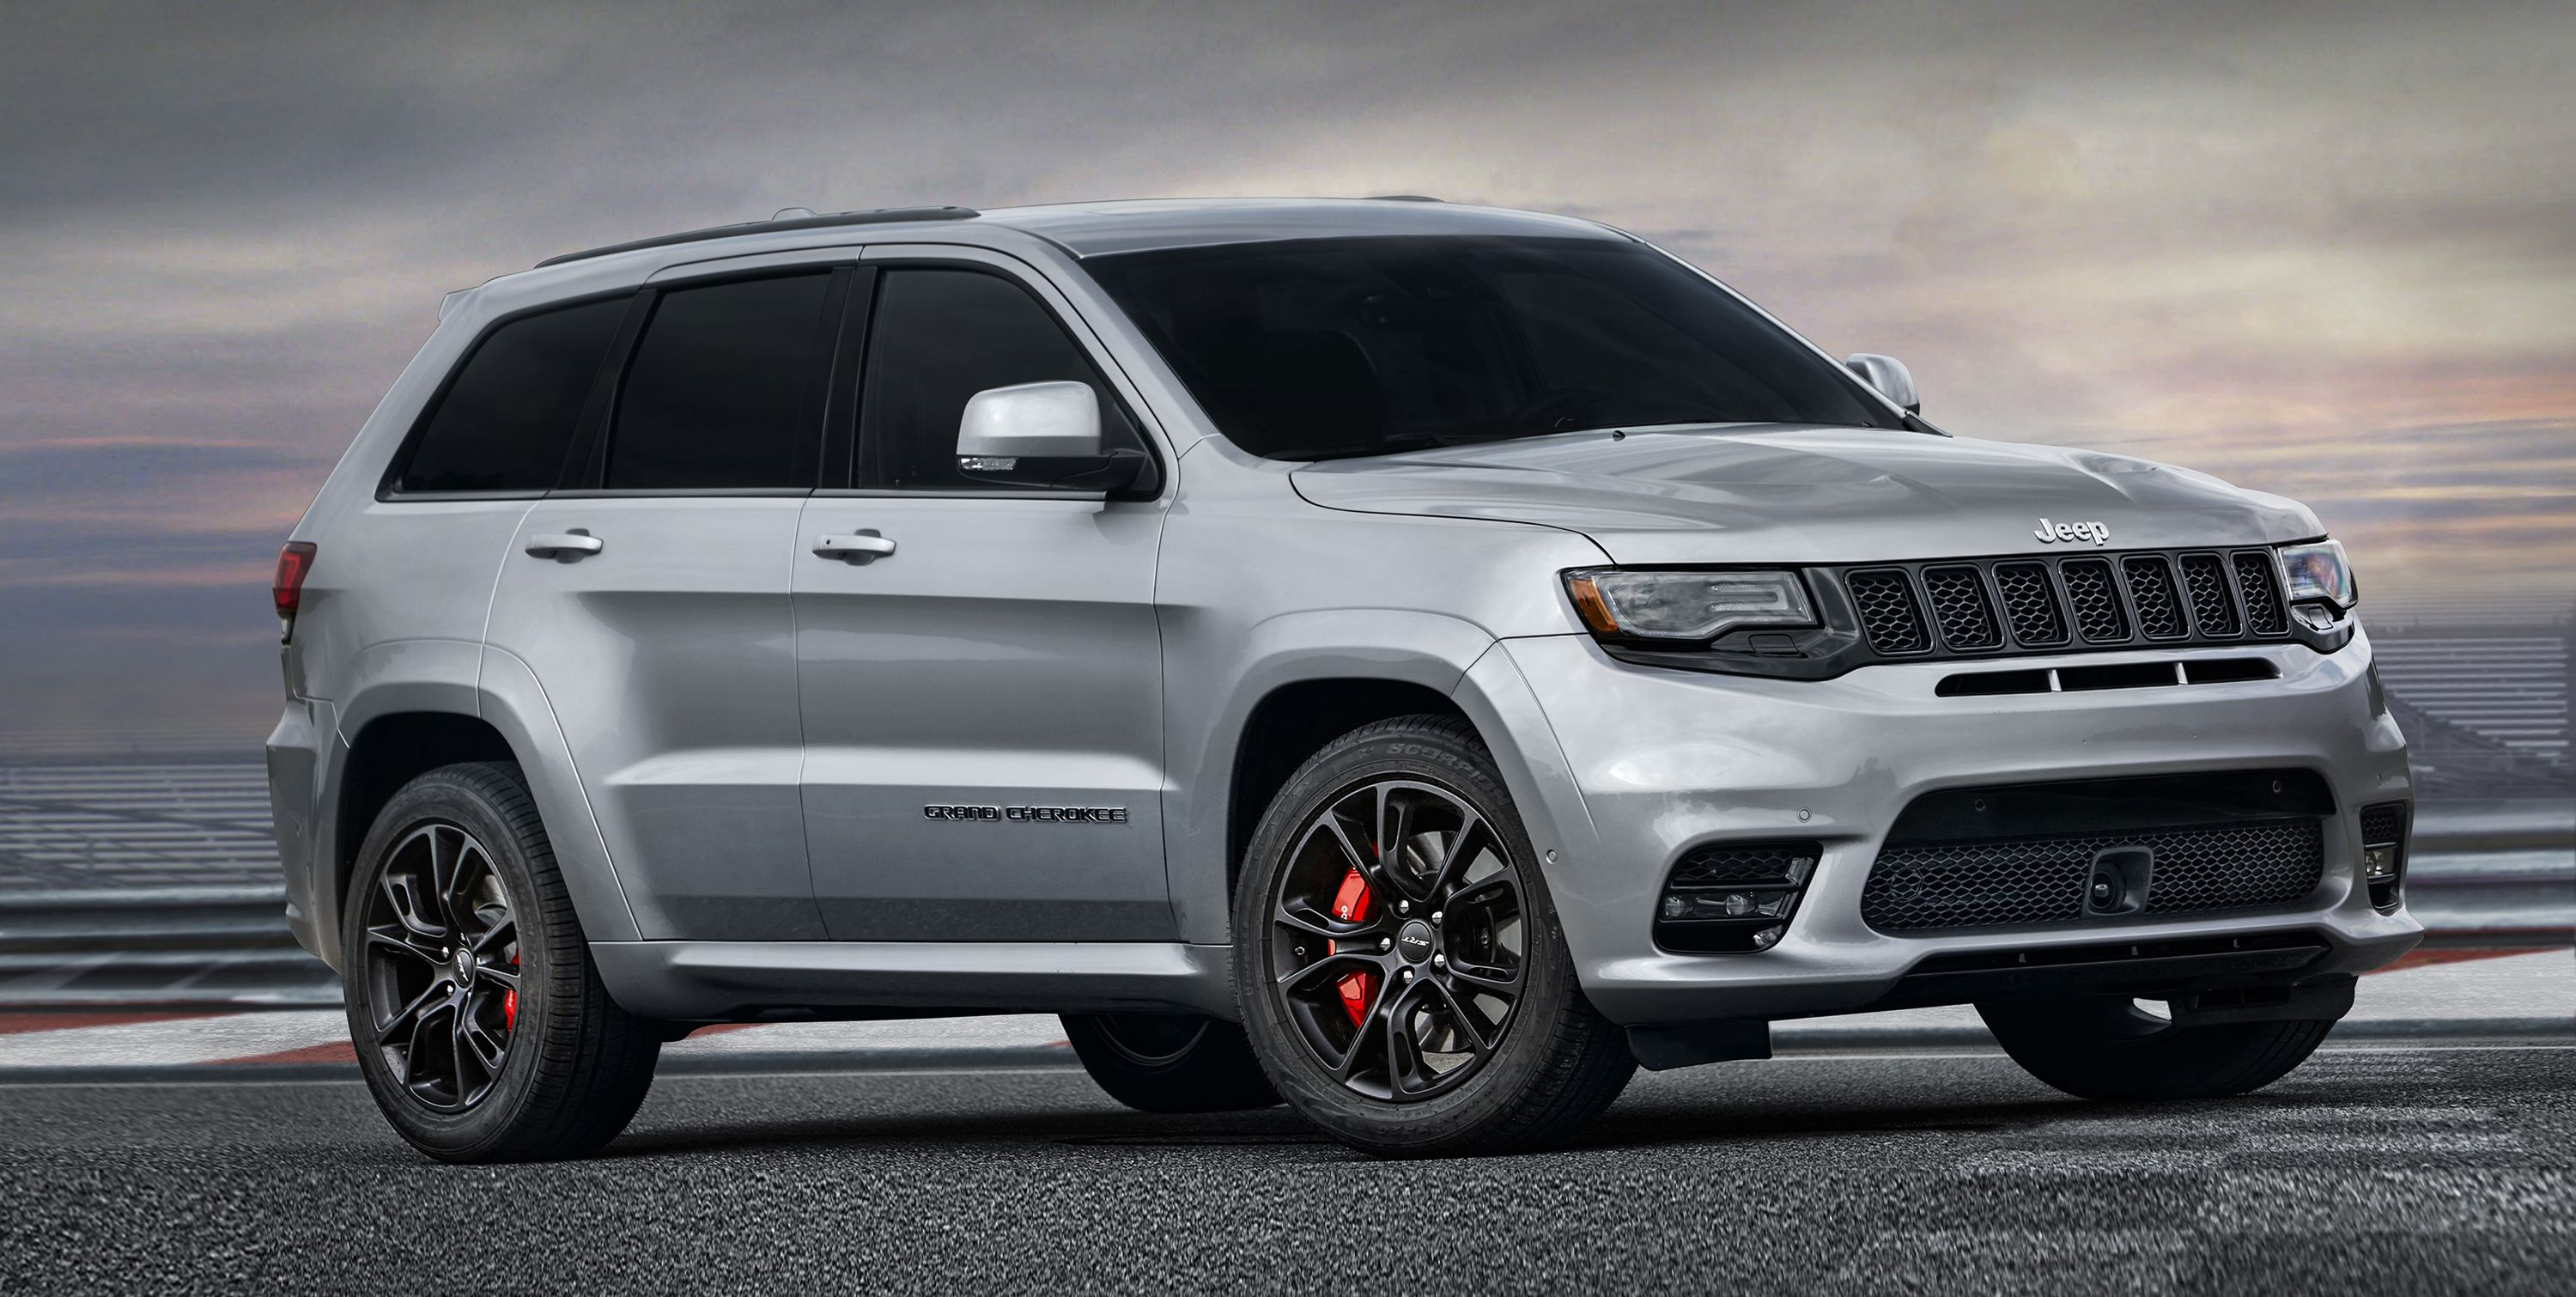 2020 Grand Cherokee Srt Exterior and Interior